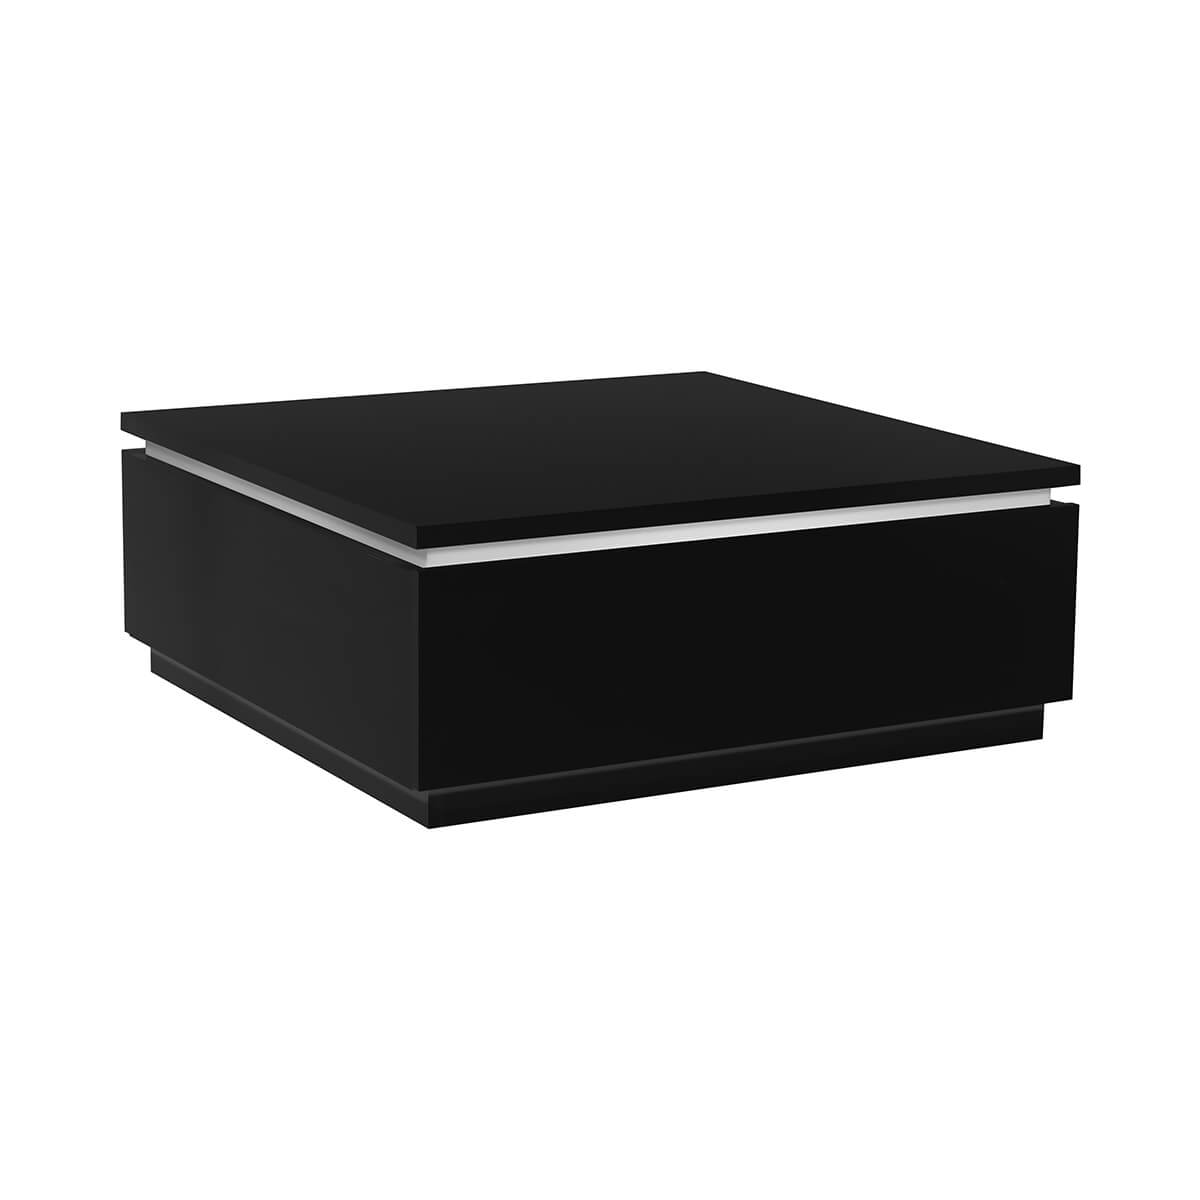 Black Coffee Table With Storage Uk: Logan High Gloss Black Coffee Table With Storage & Lights